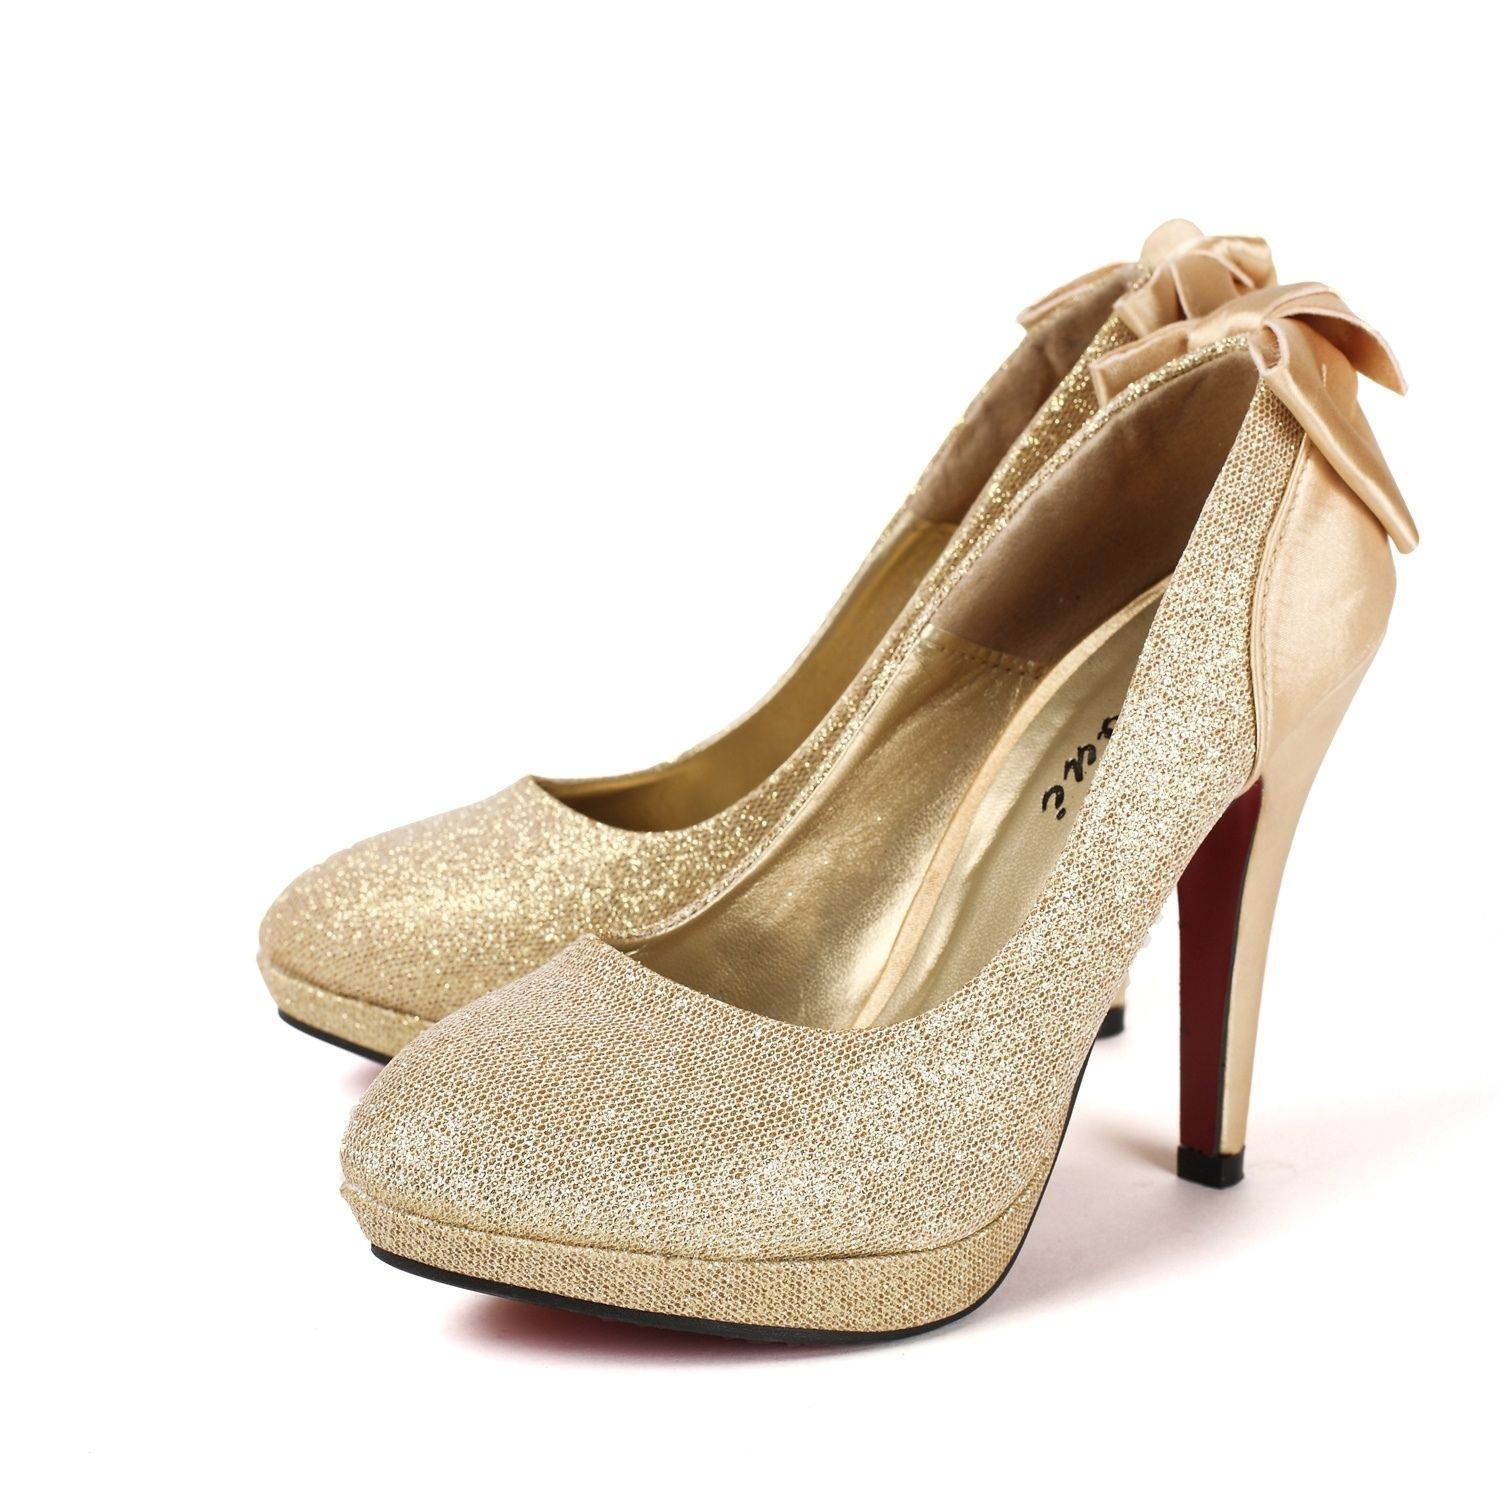 High heels gold glitter wedding shoes with bow